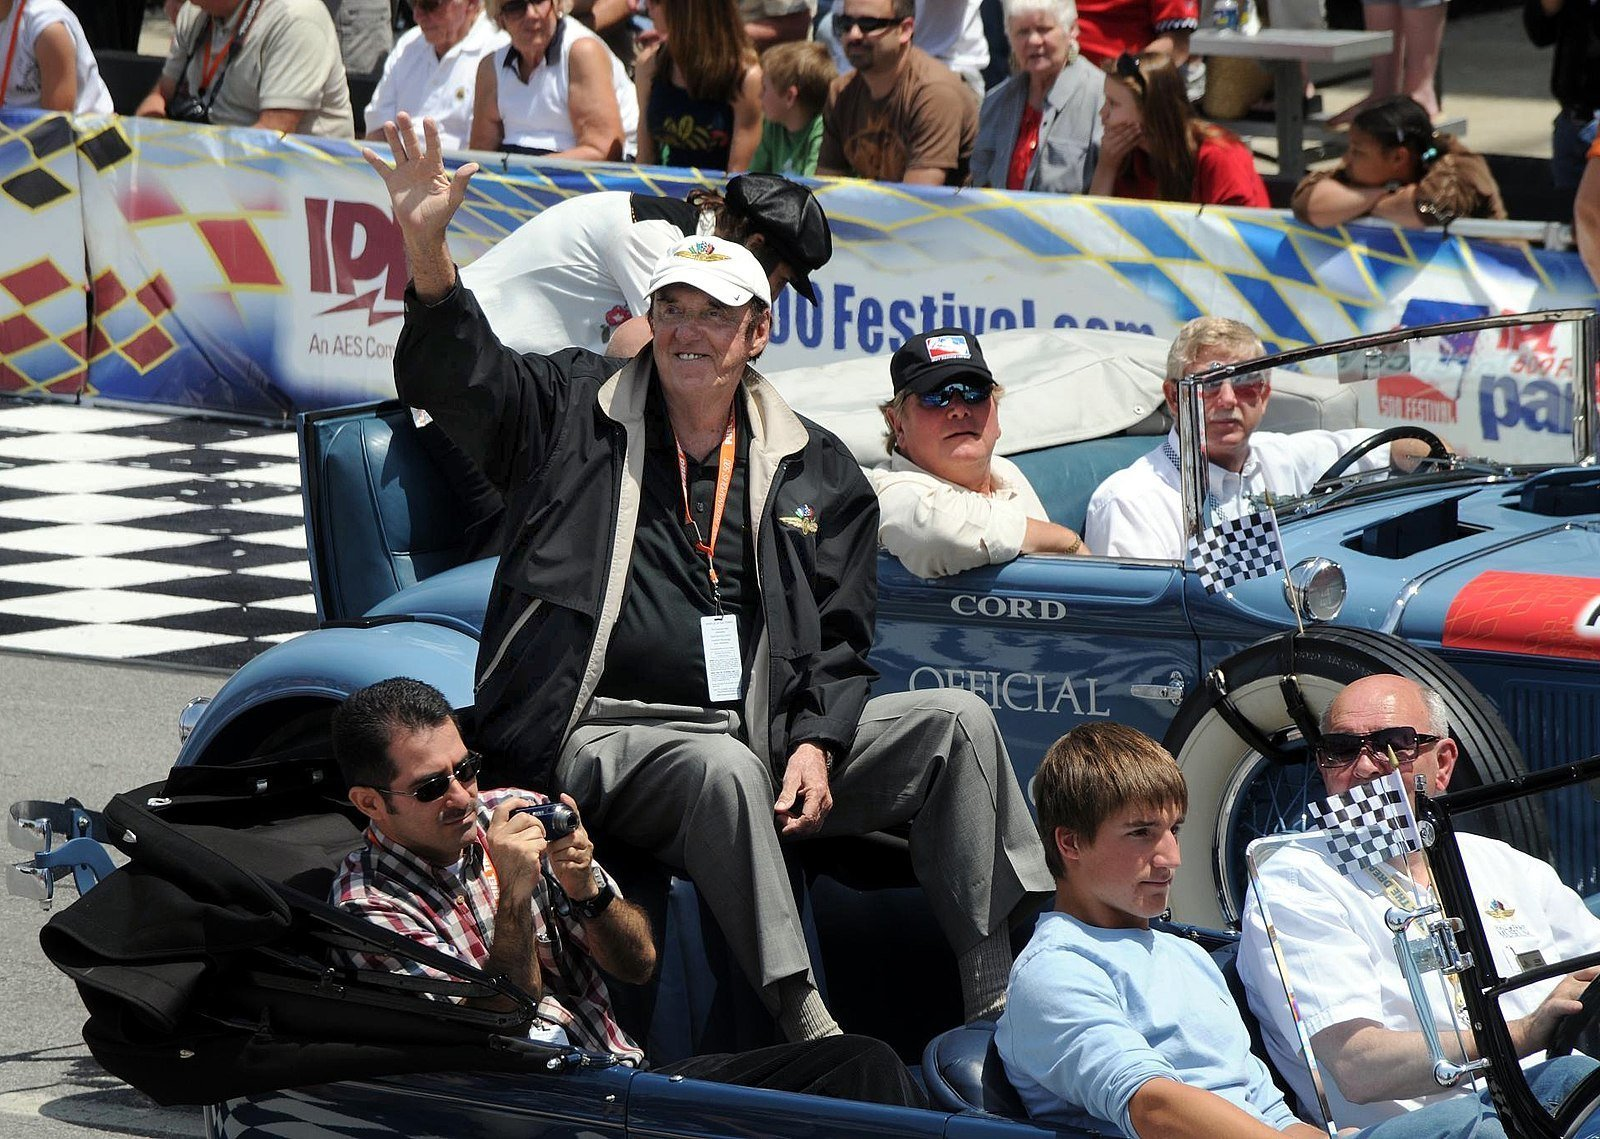 Jim Nabors at the opening of the Indianapolis 500 on May 24, 2008. | Source: Wikimedia Commons